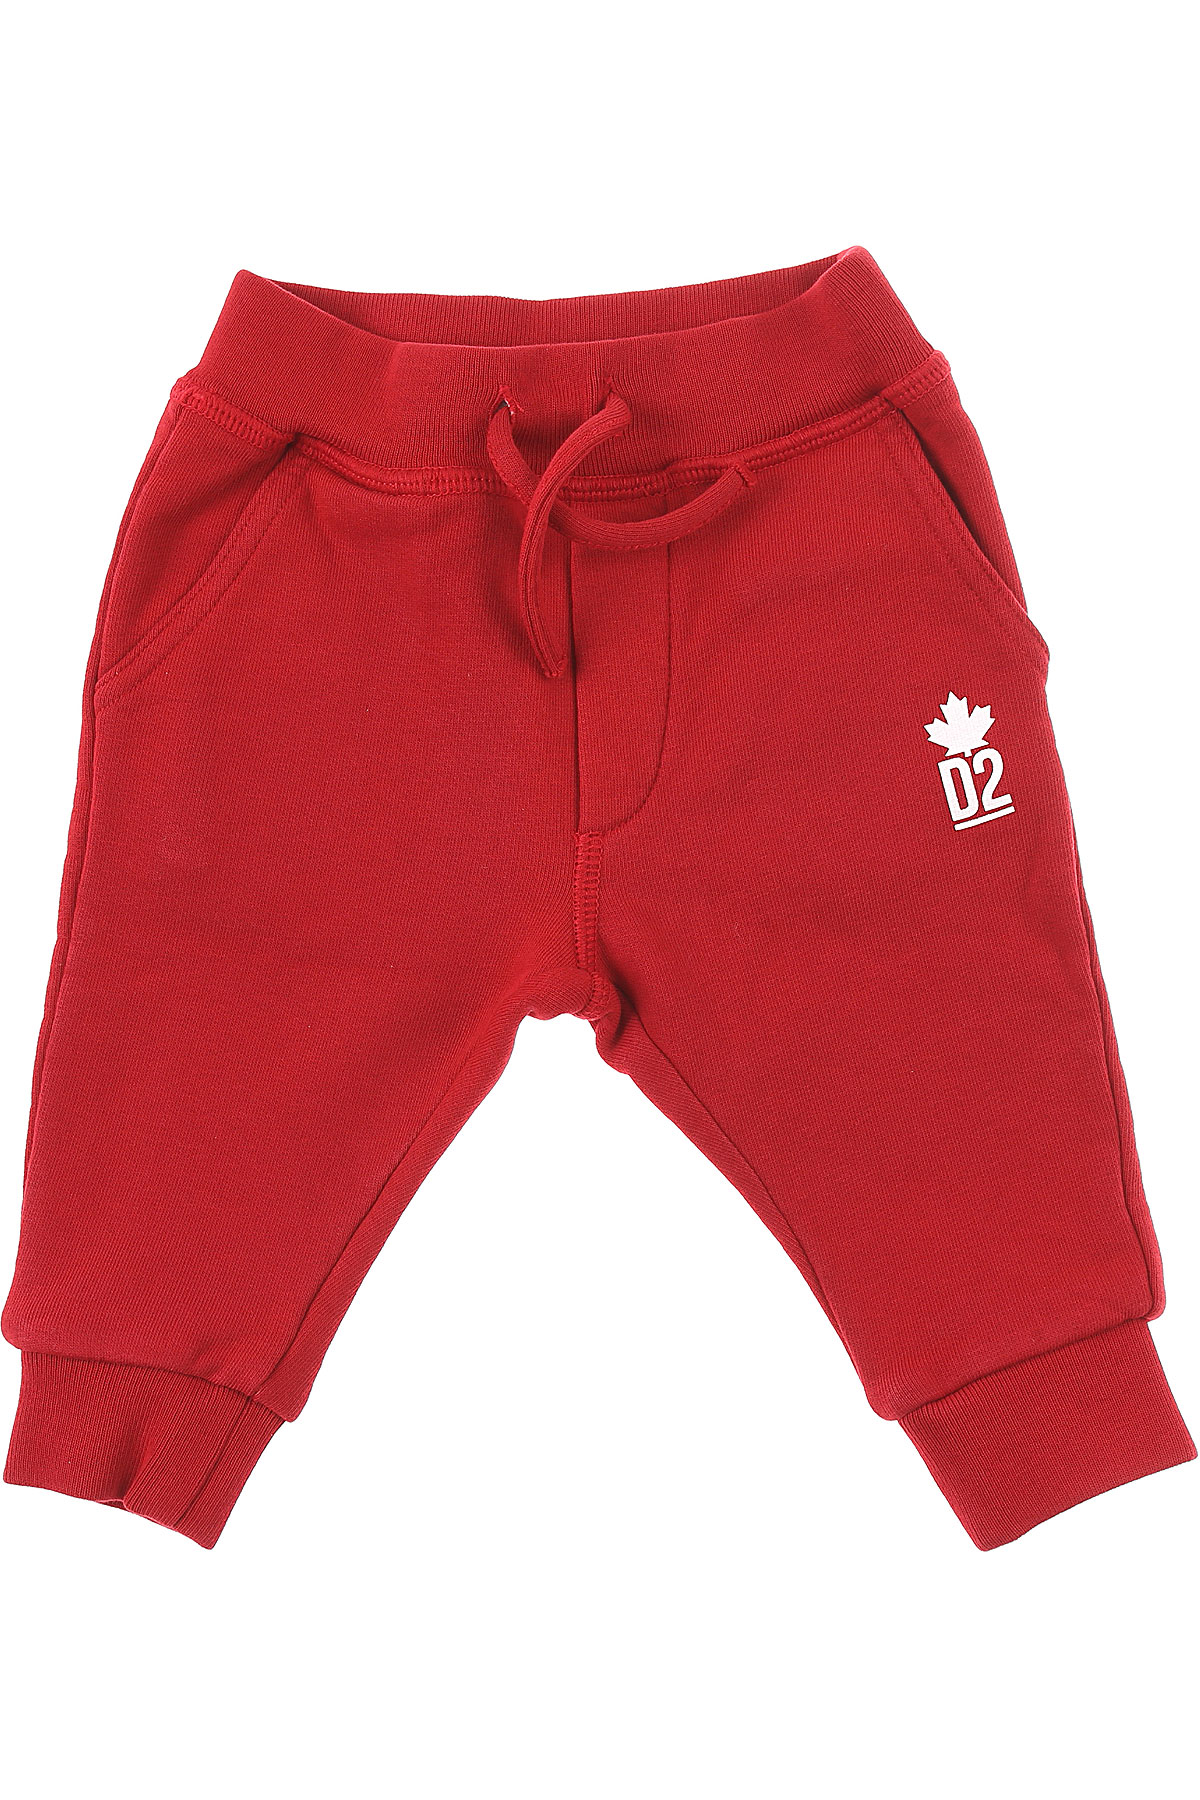 Dsquared2 Baby Sweatpants for Boys On Sale, Red, Cotton, 2019, 12 M 18 M 2Y 3Y 6M 9 M